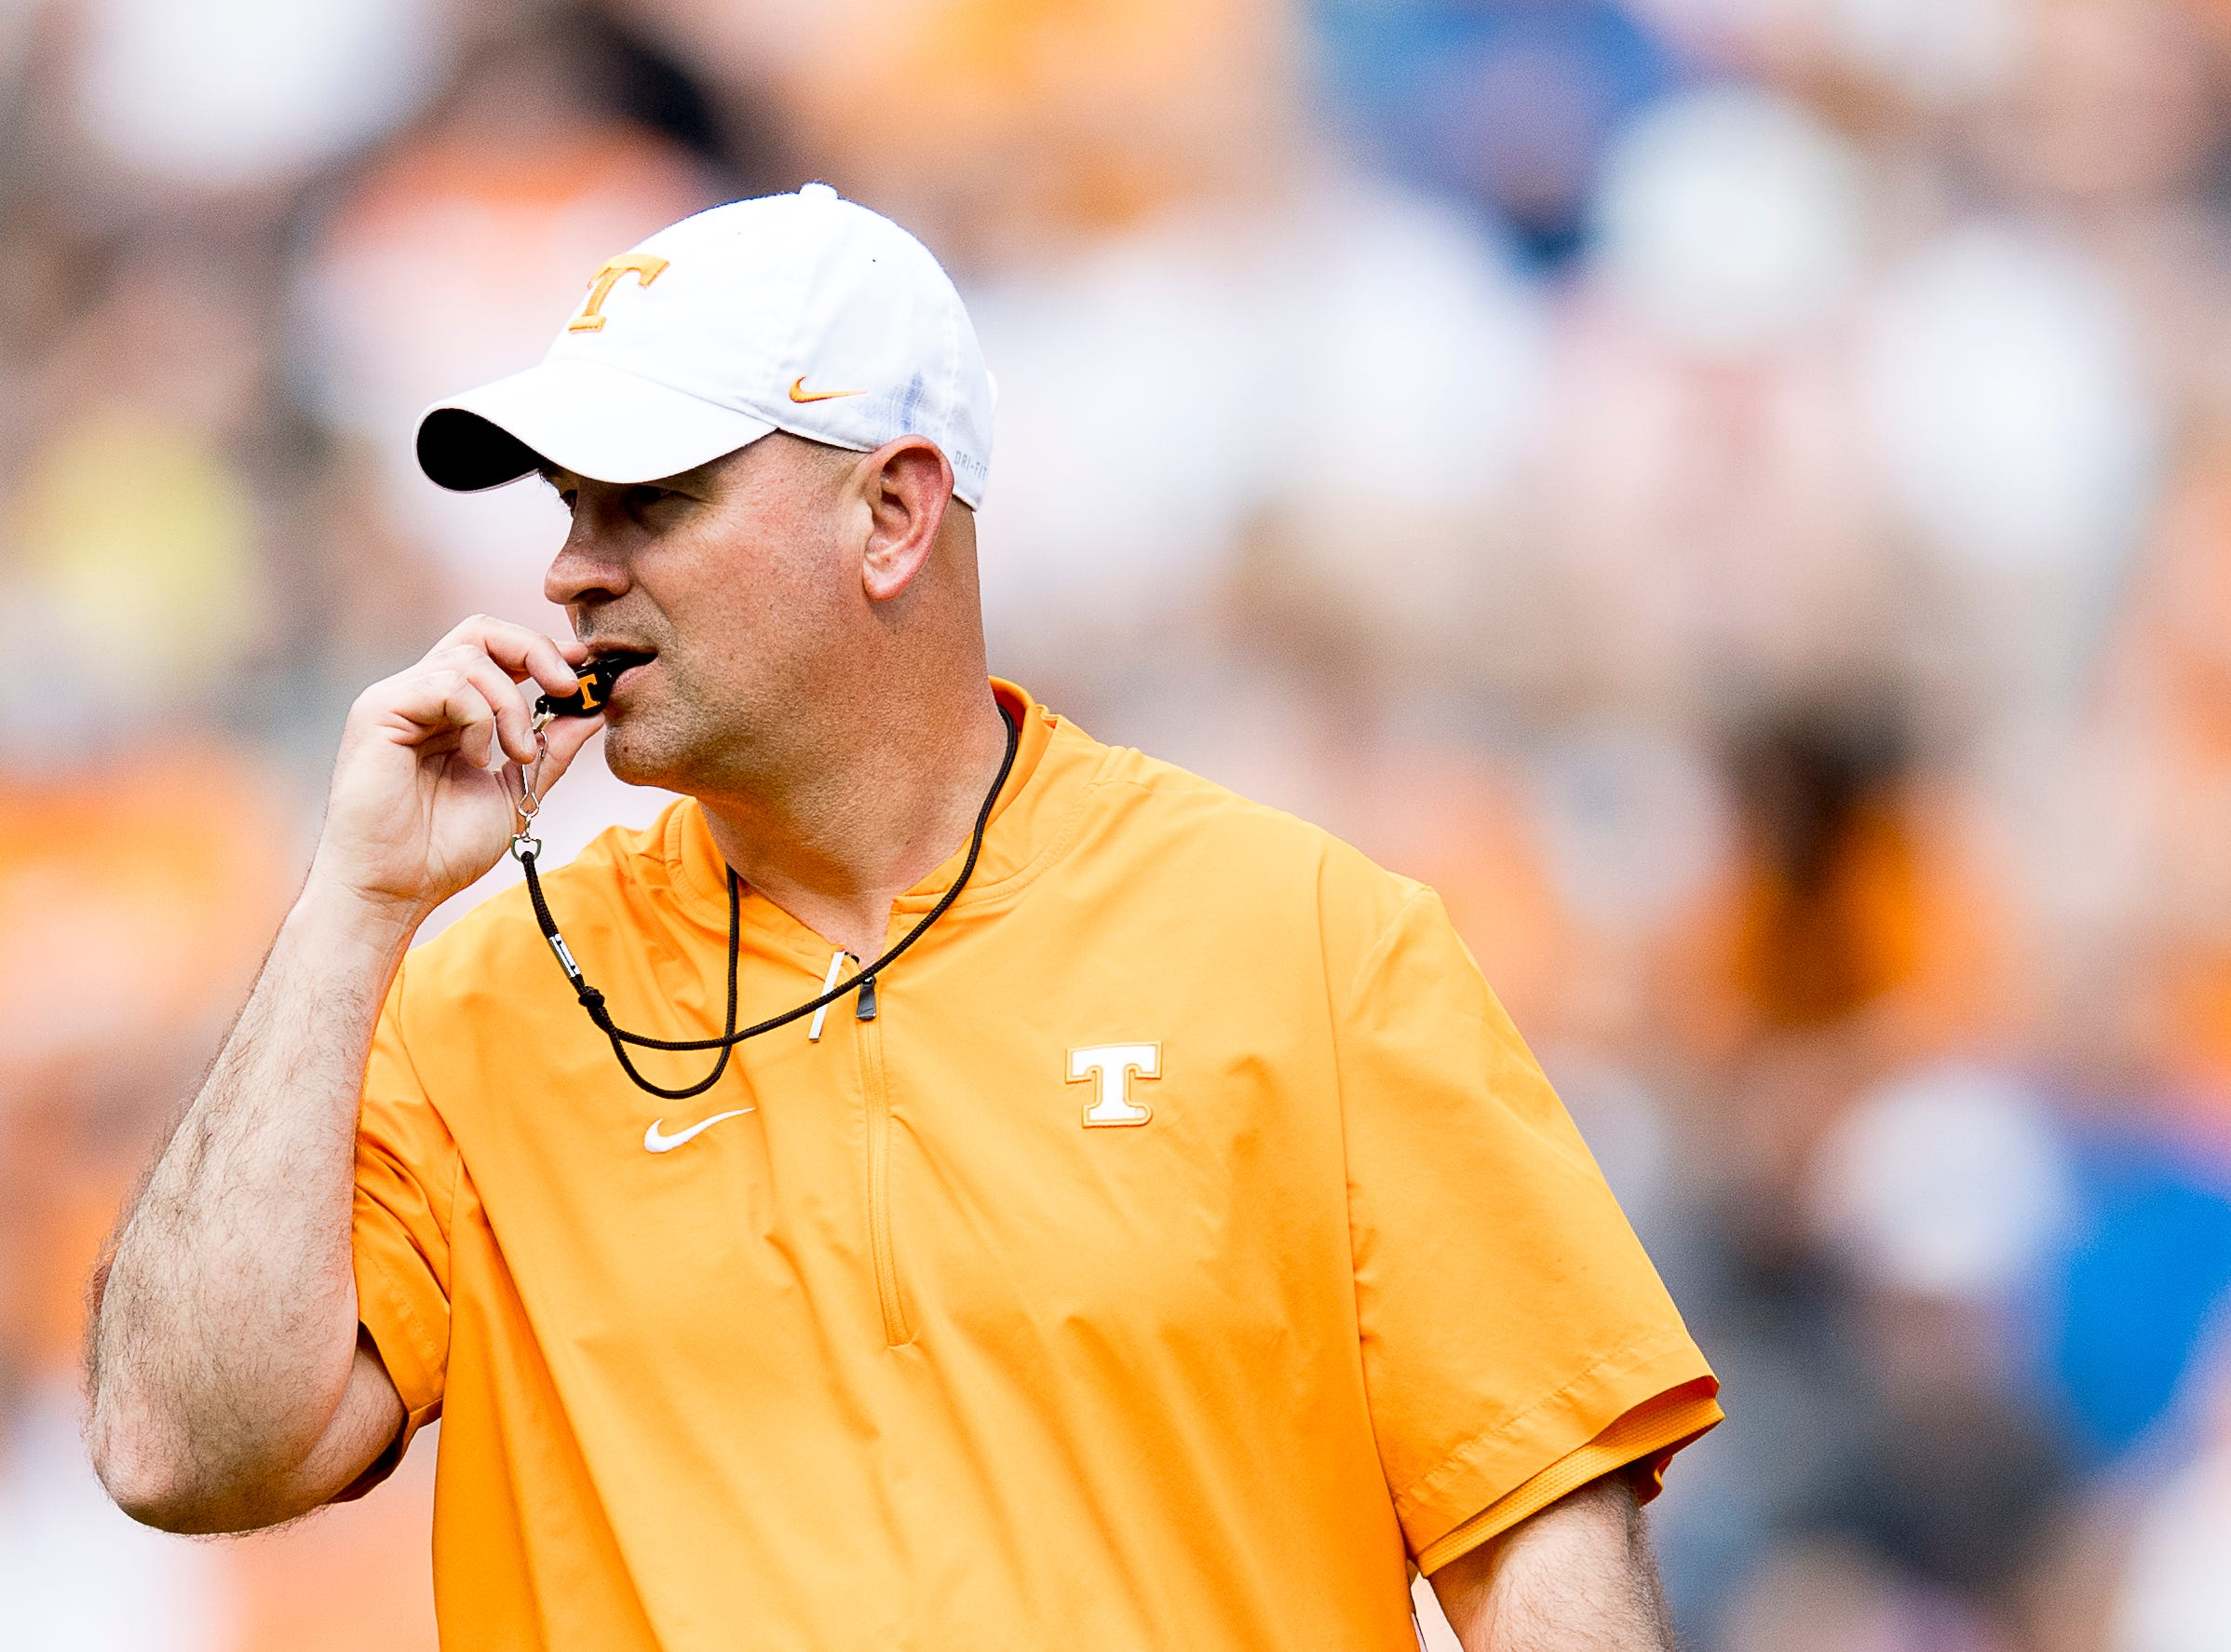 Tennessee Head Coach Jeremy Pruitt walks down the field during the Tennessee Spring Game at Neyland Stadium in Knoxville, Tennessee on Saturday, April 13, 2019.